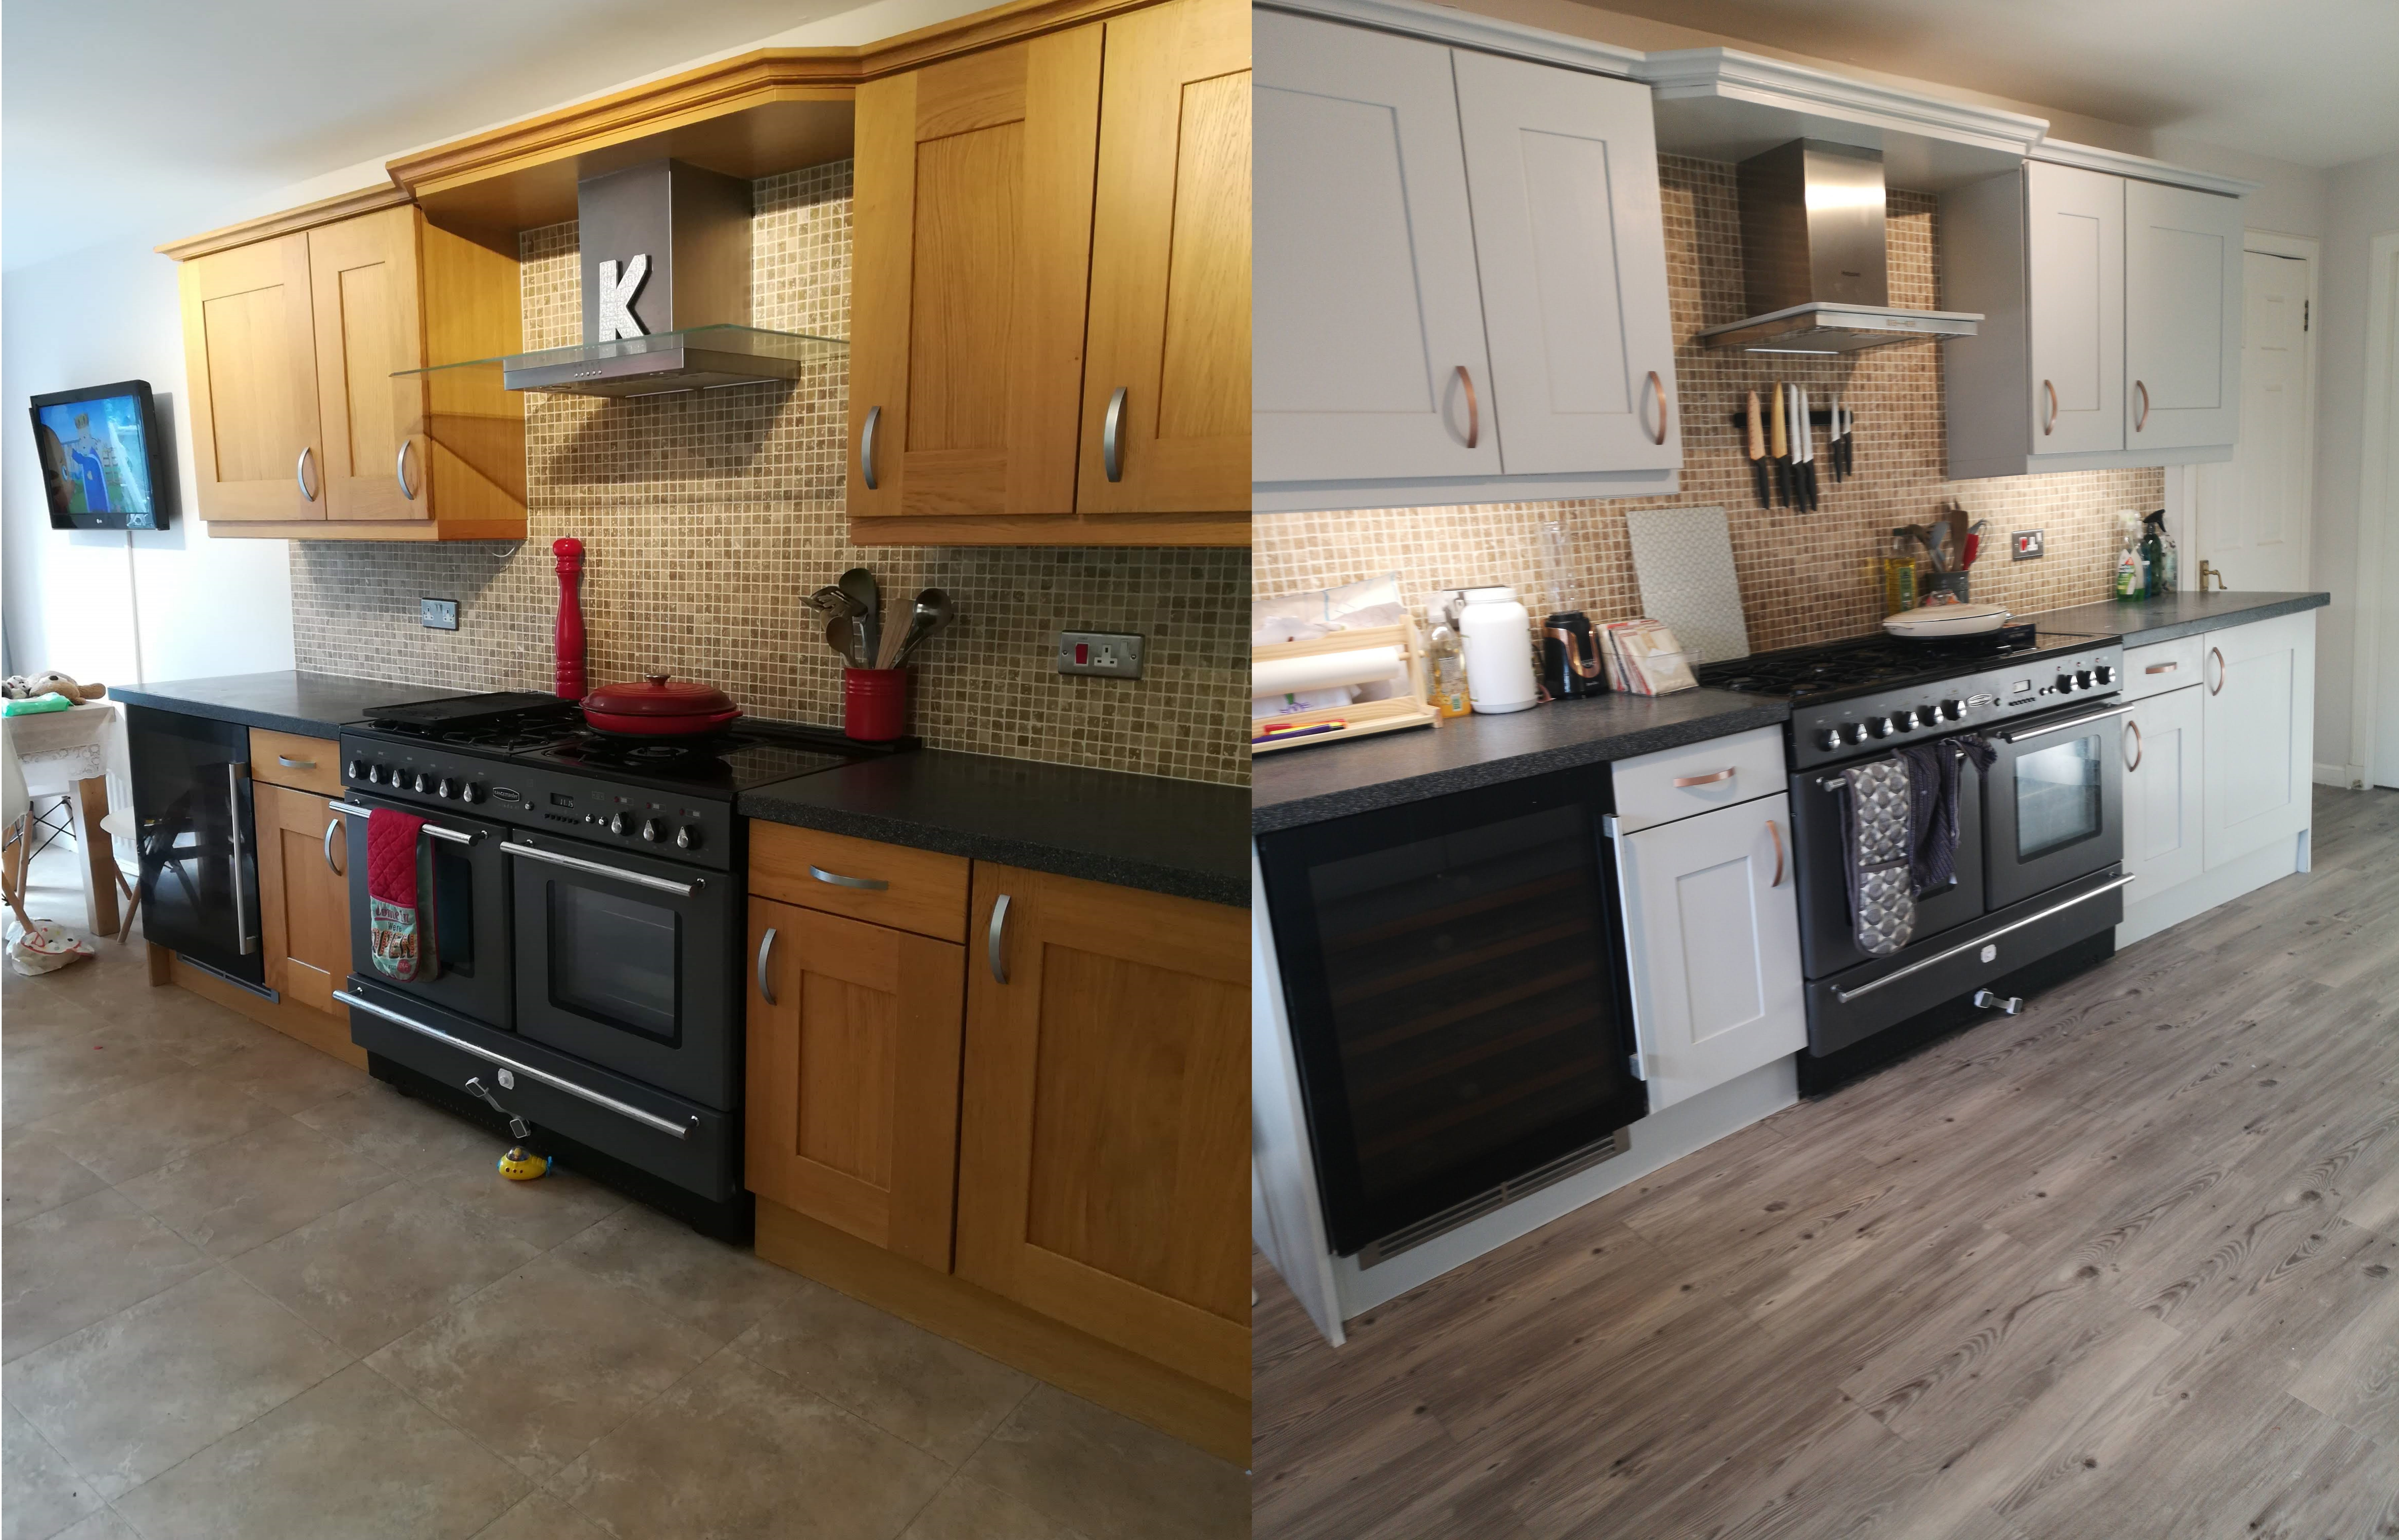 Cheap Kitchen Renovation: how I transformed my kitchen for under £250